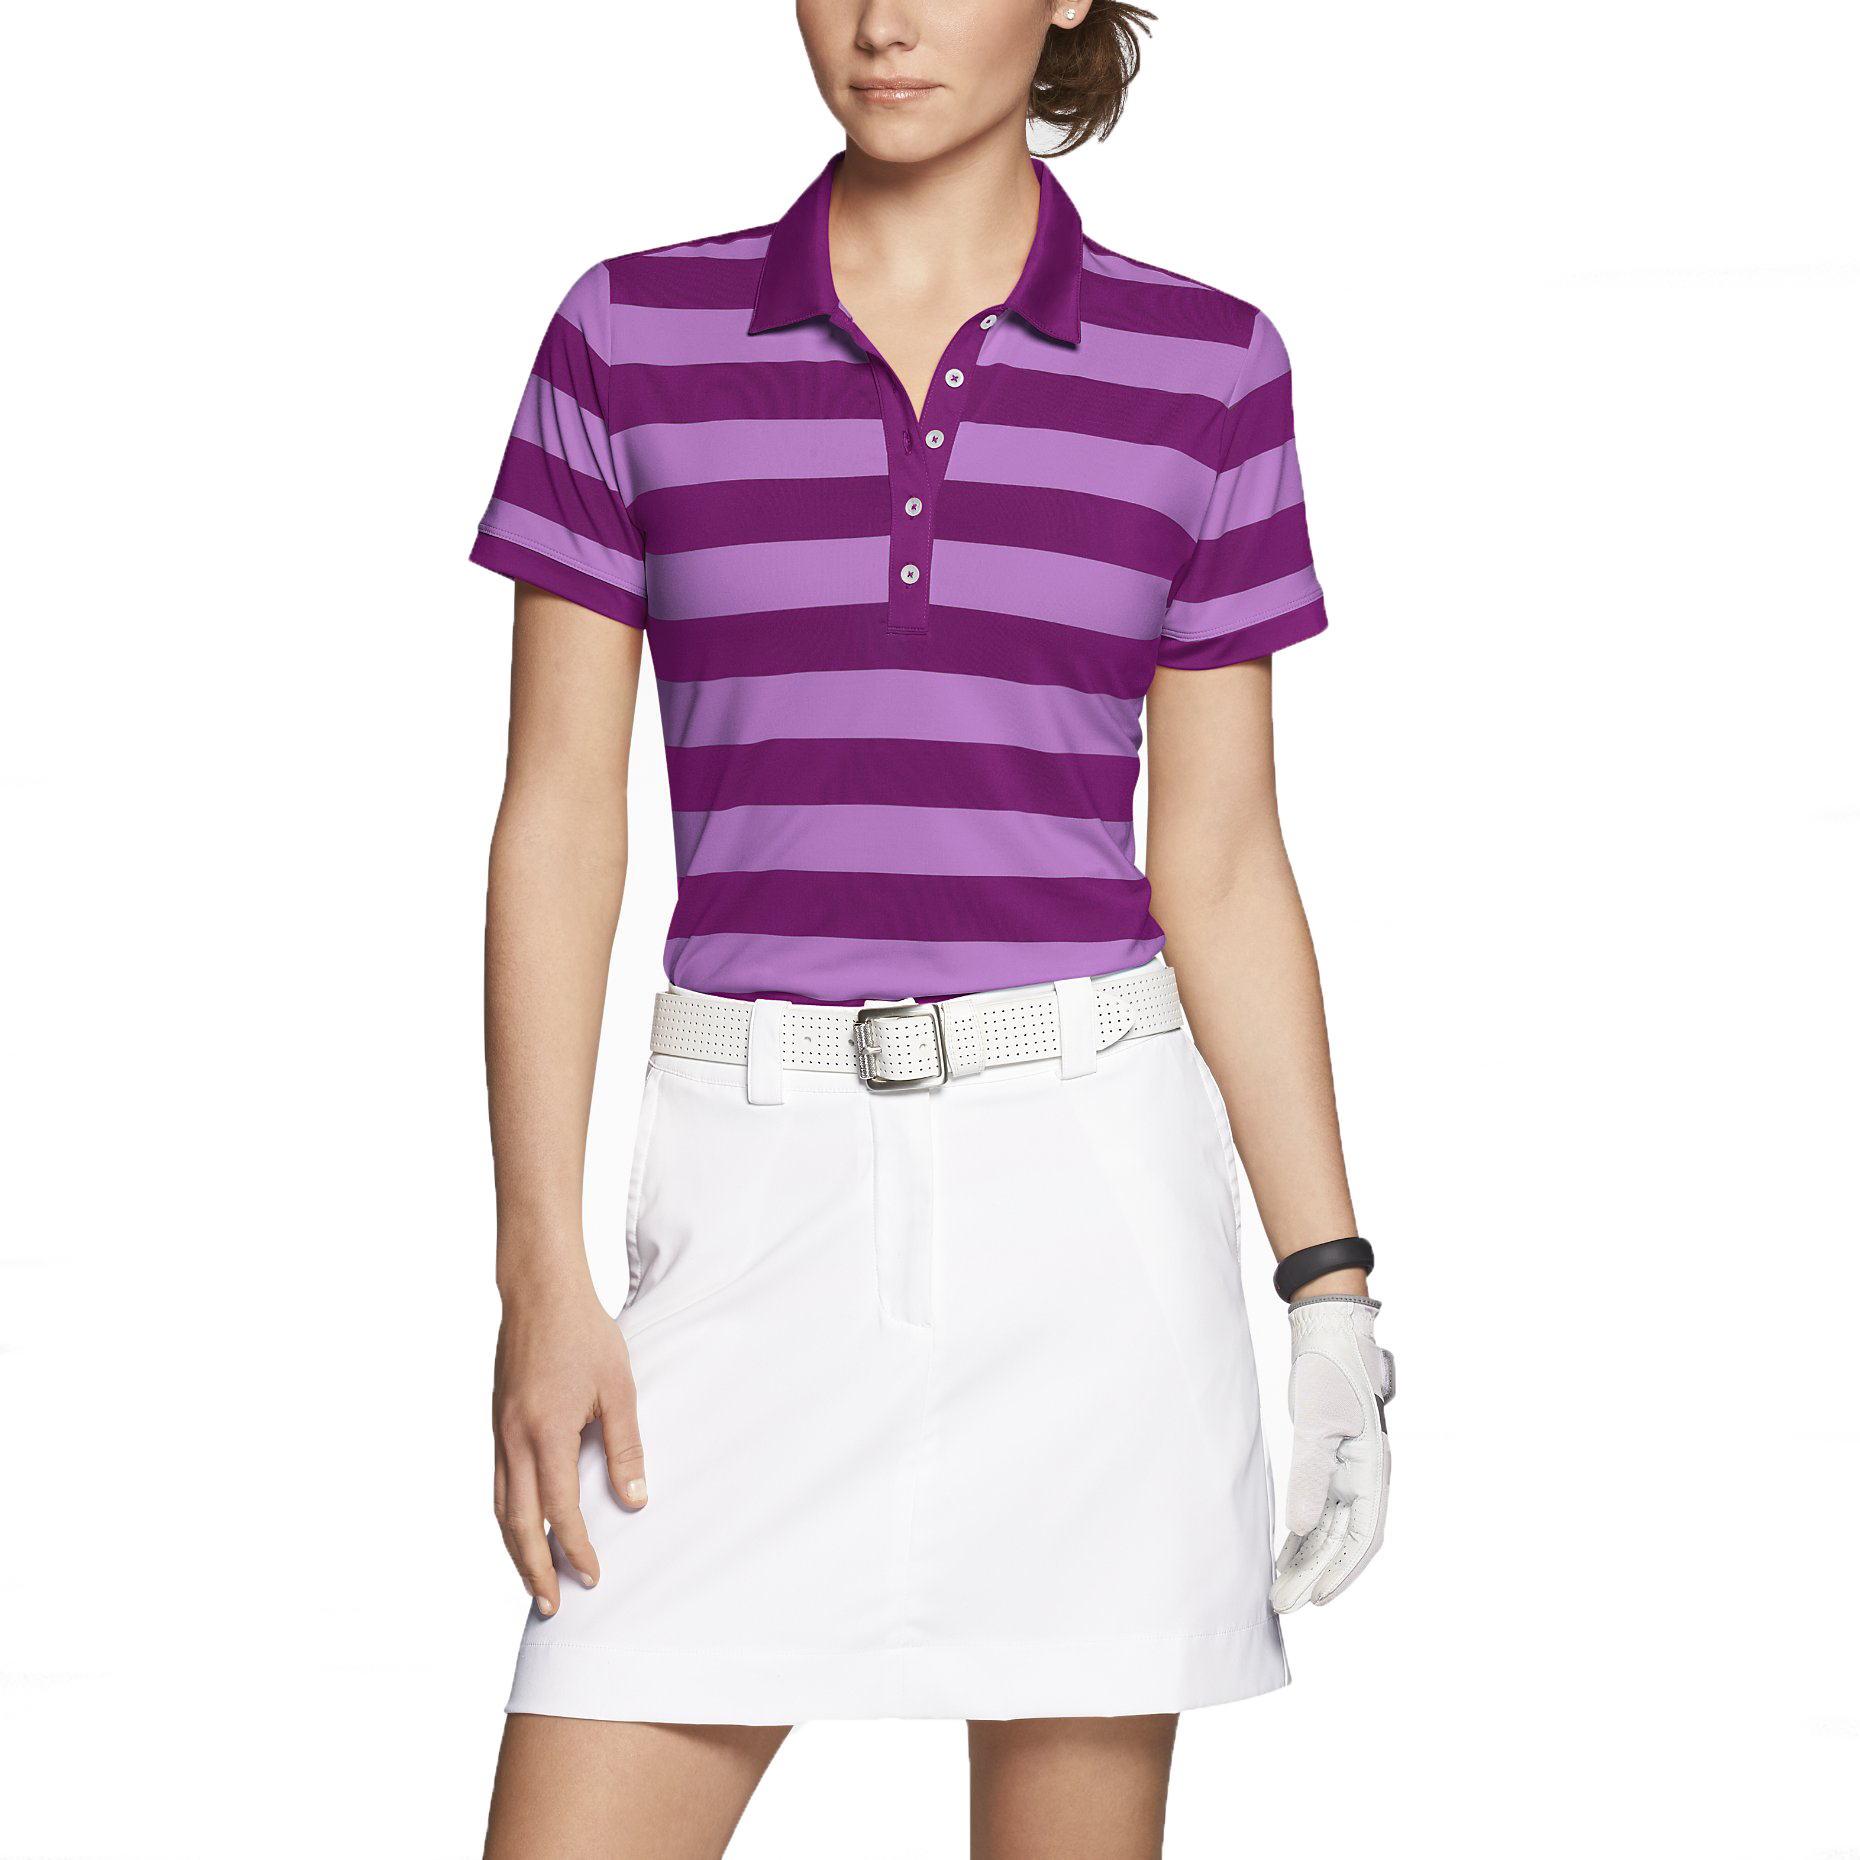 Nike women 39 s dri fit bold stripe golf polo shirt ebay for Women s dri fit golf shirts